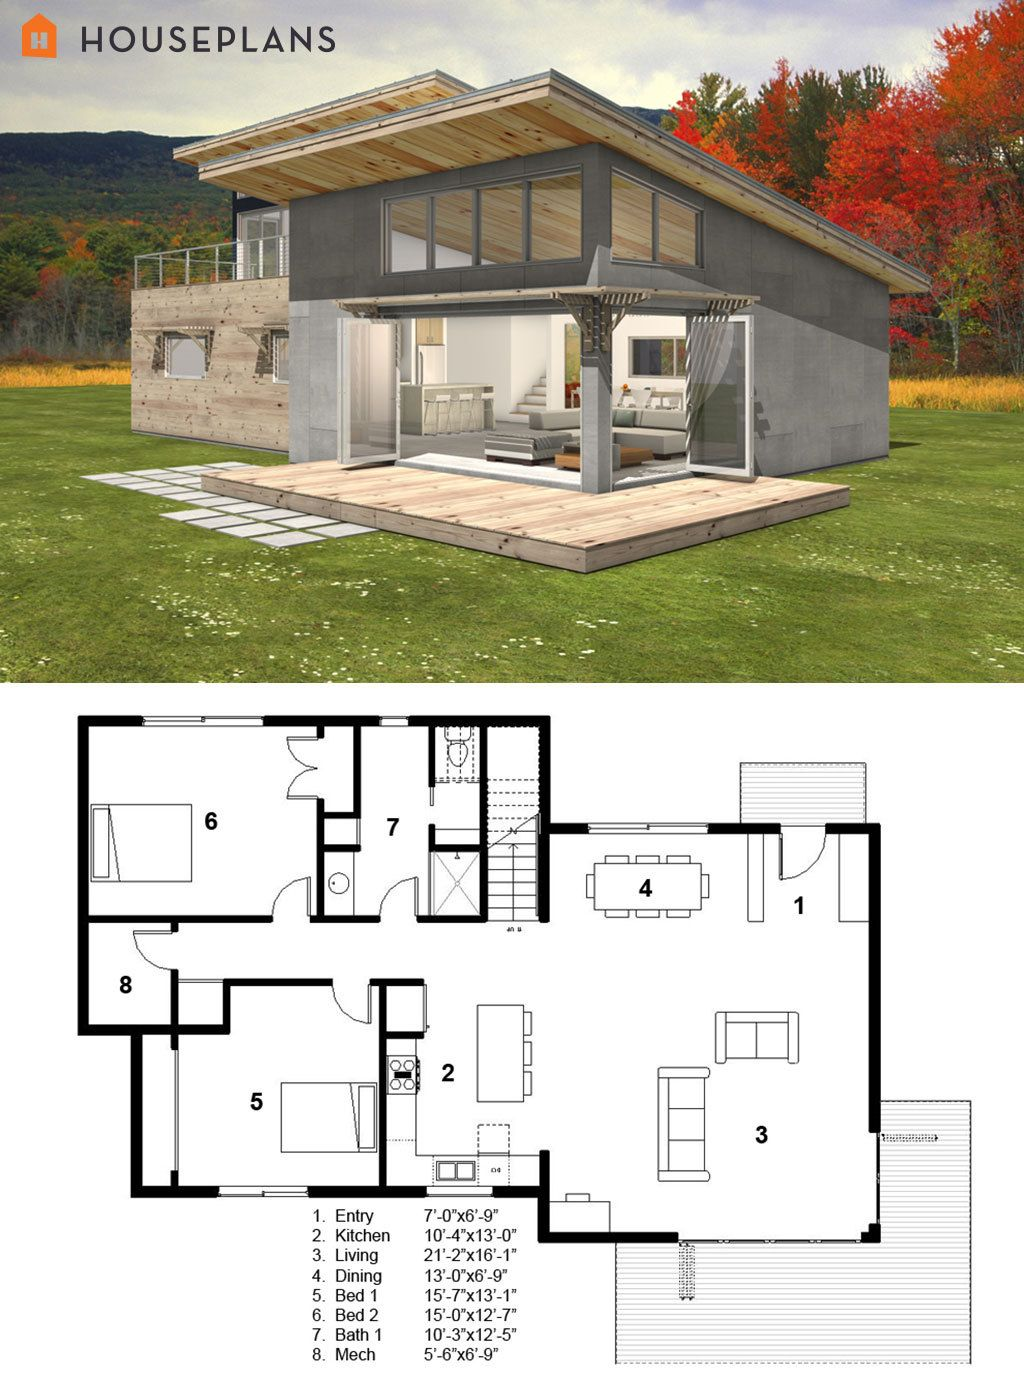 Small modern cabin house plan by freegreen energy for Energy efficient house plans free